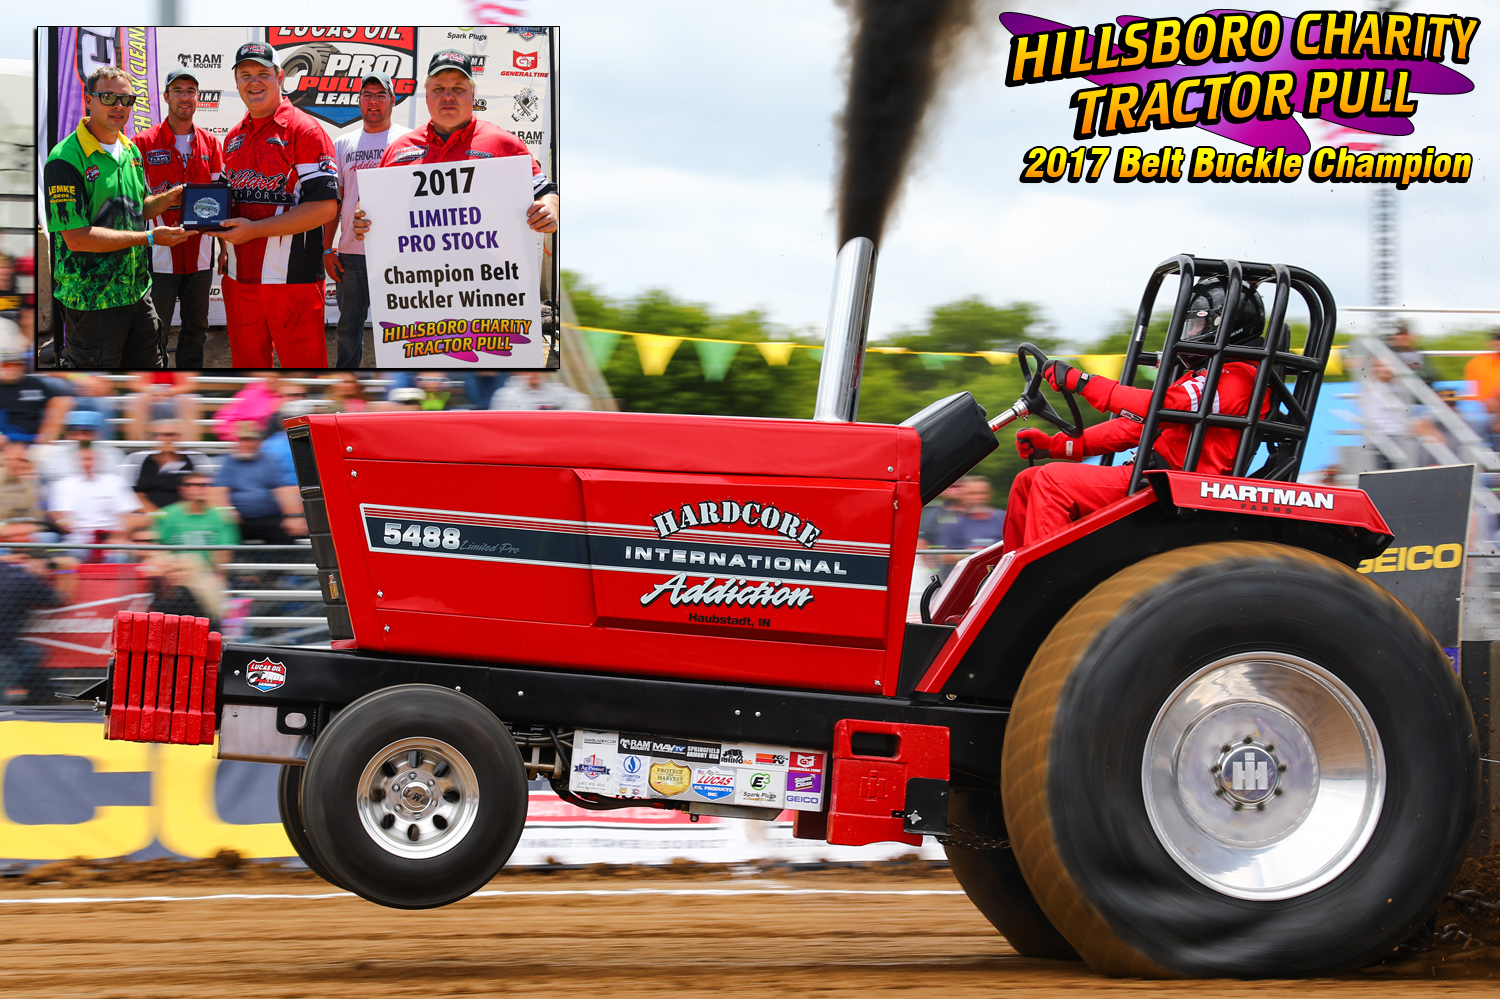 "Limited Pro Stock Tractors- Andrew Hartman ""Hardcore Addiction"""